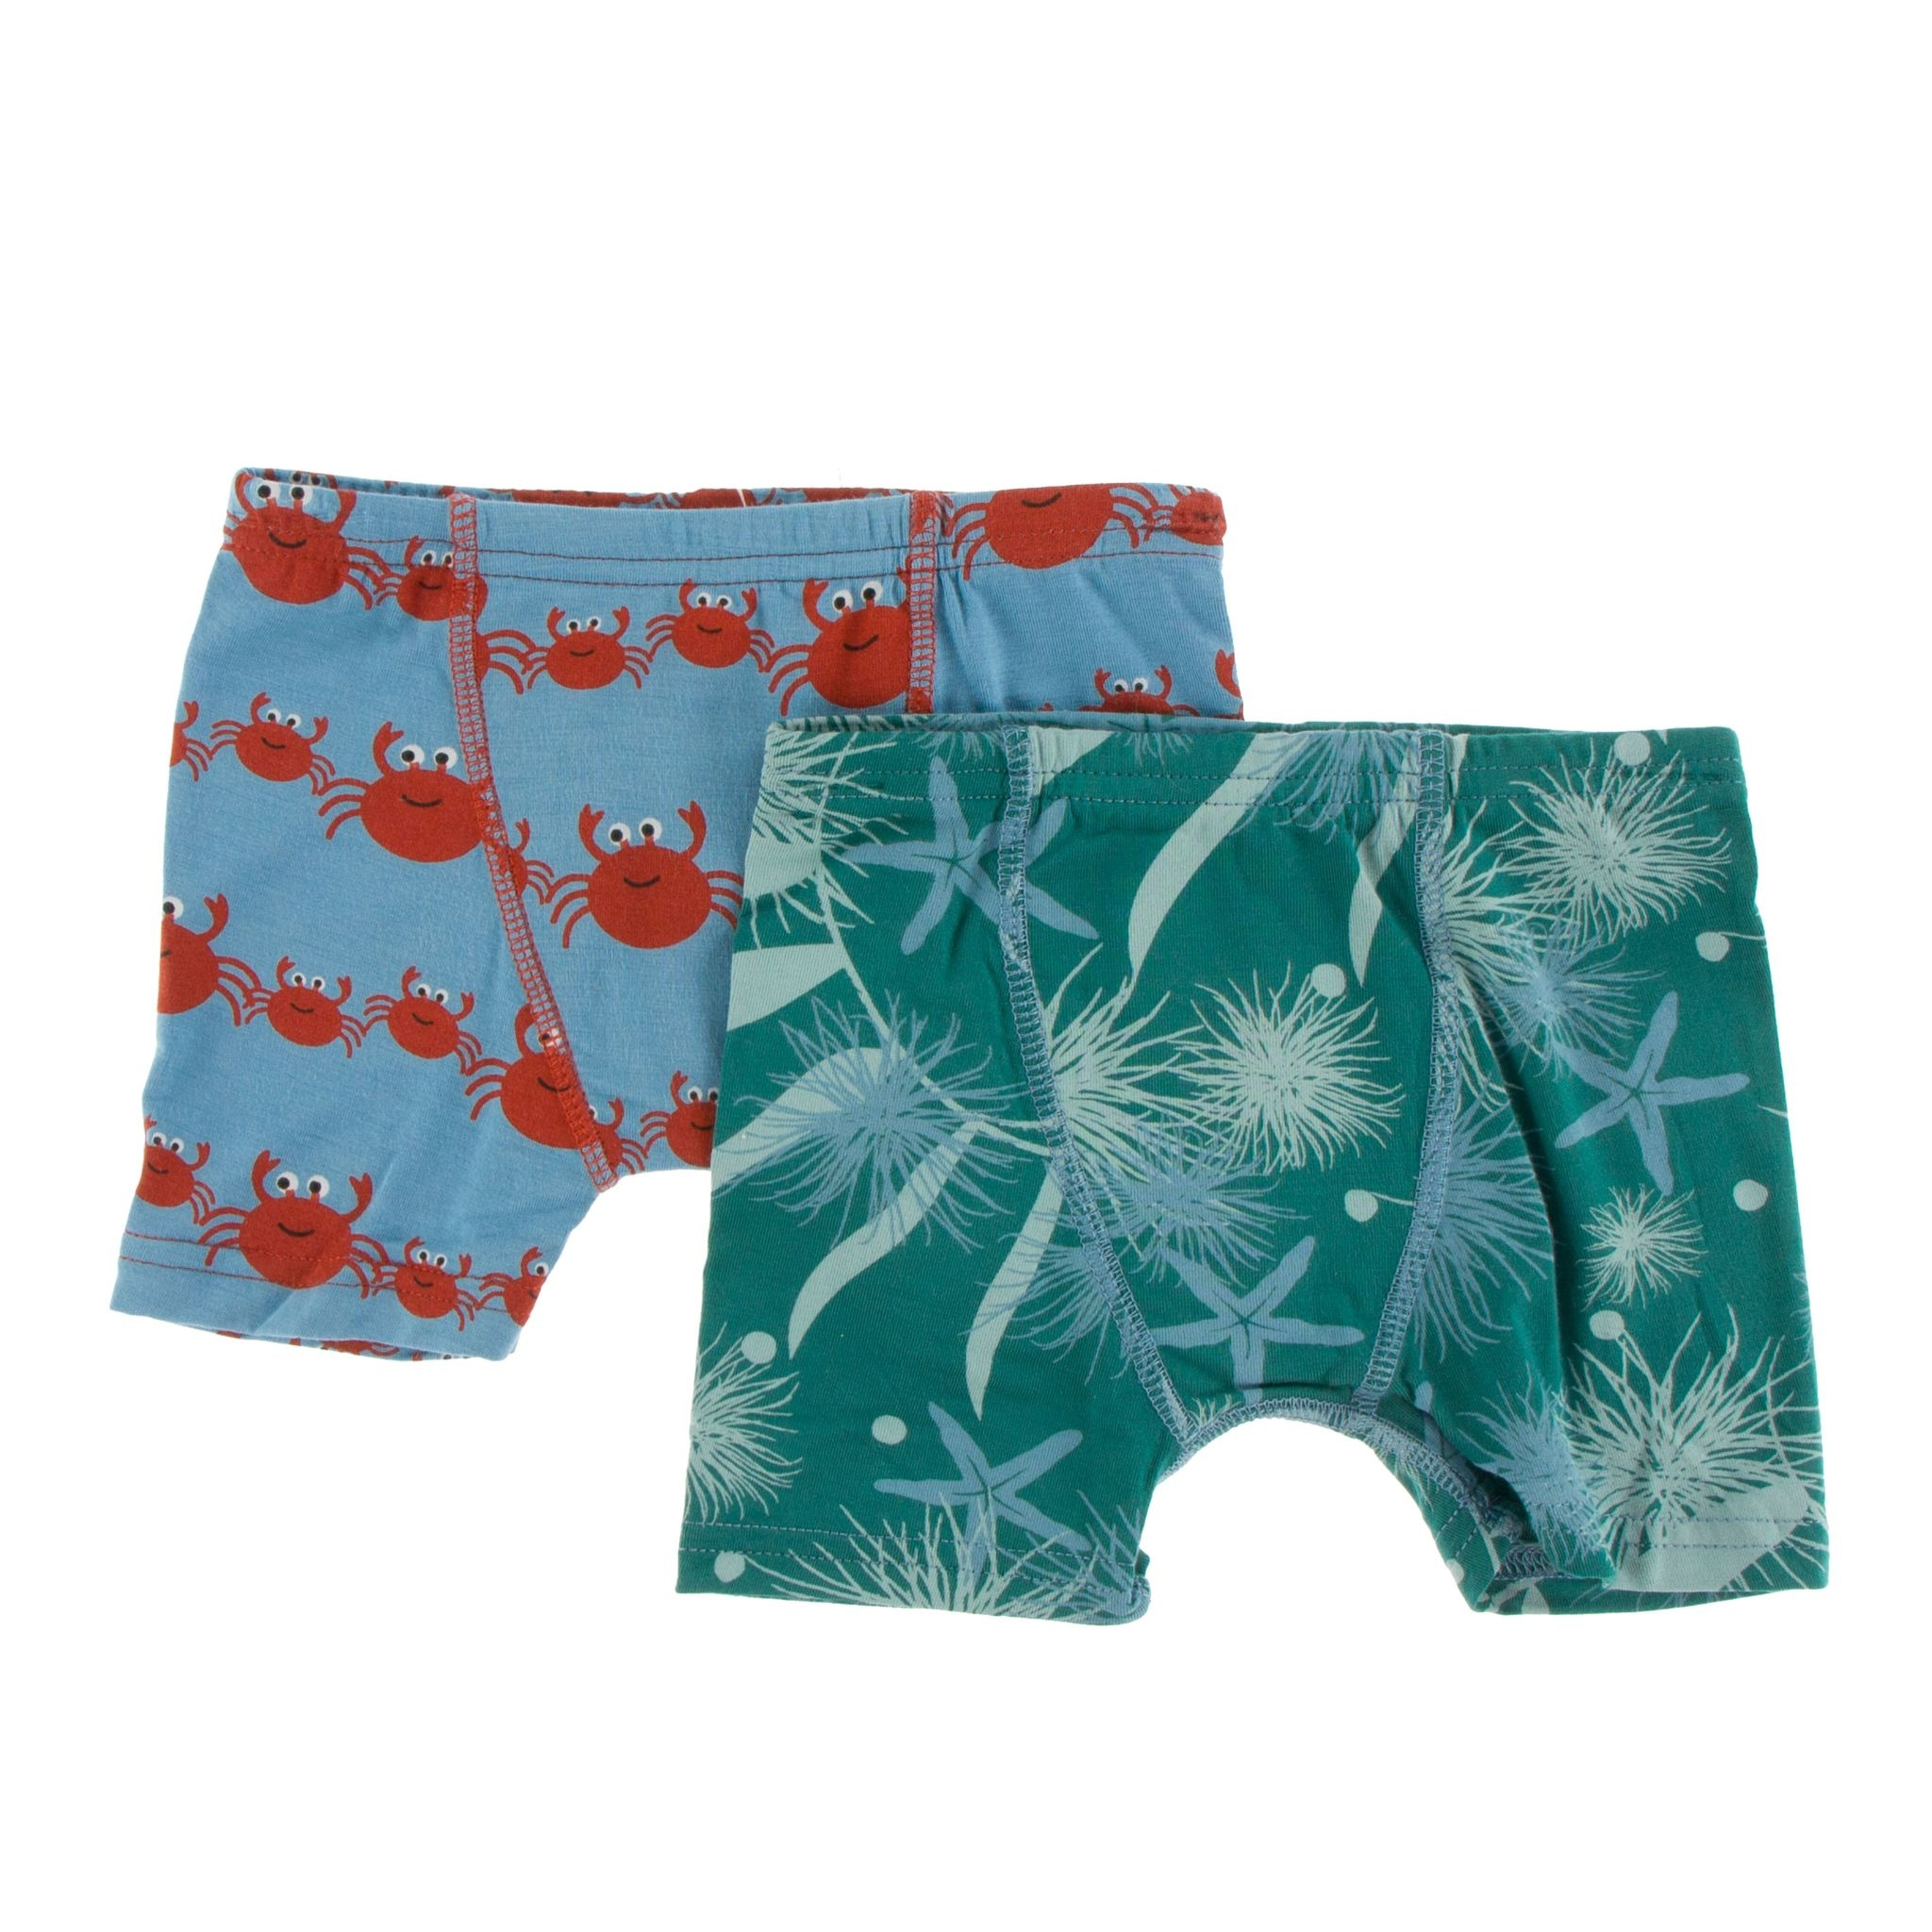 KICKEE PANTS Boxer Briefs